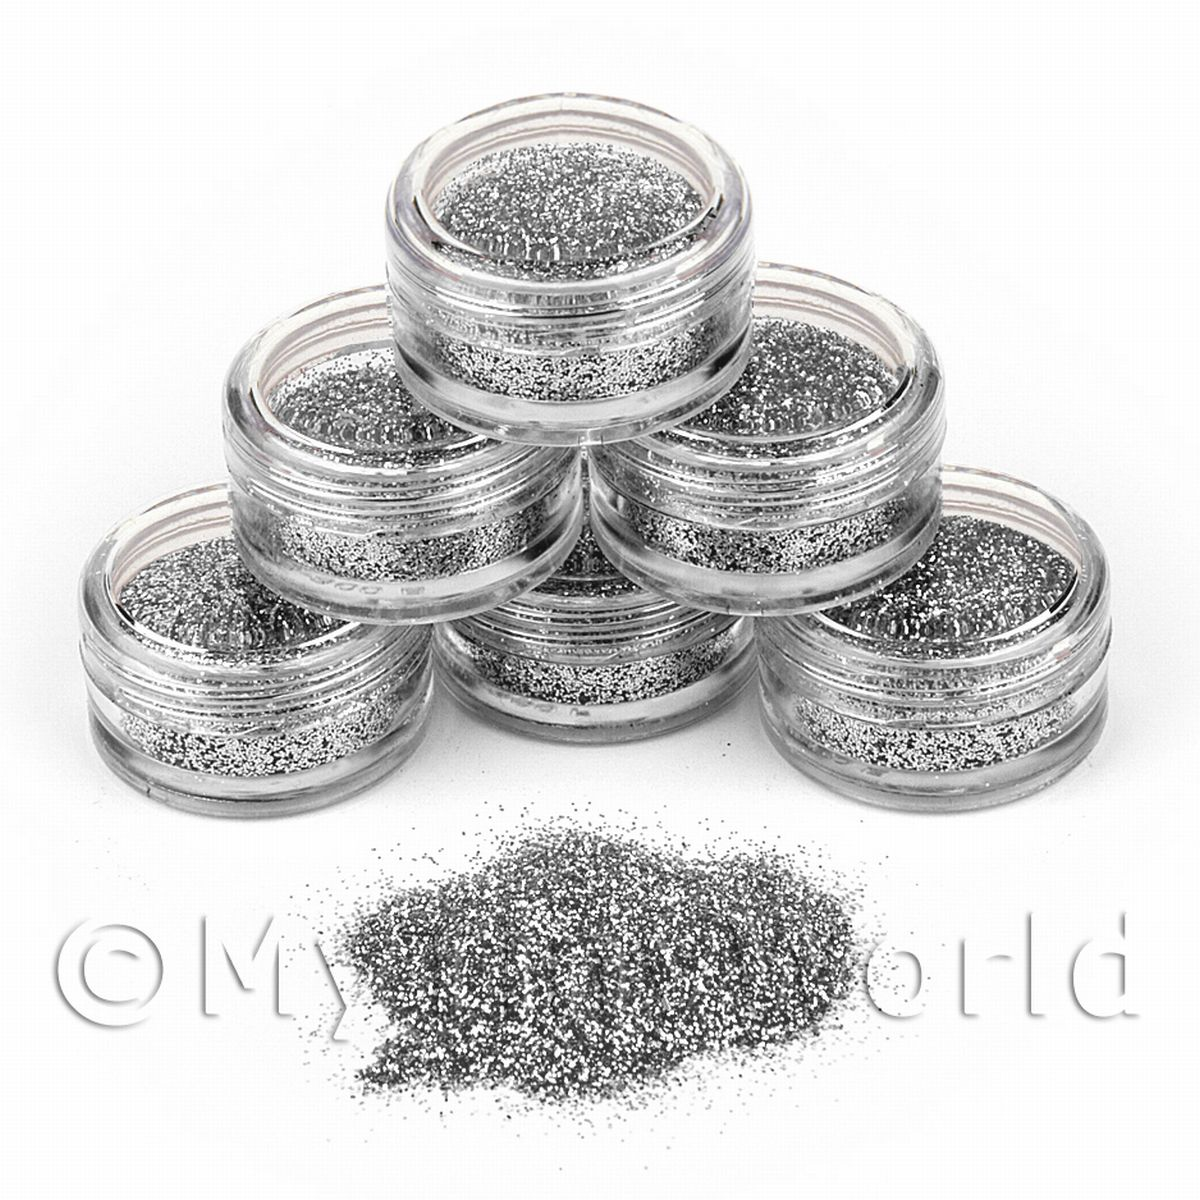 High Quality Nail Art Glitter - 2g Pot - Silvery Moon